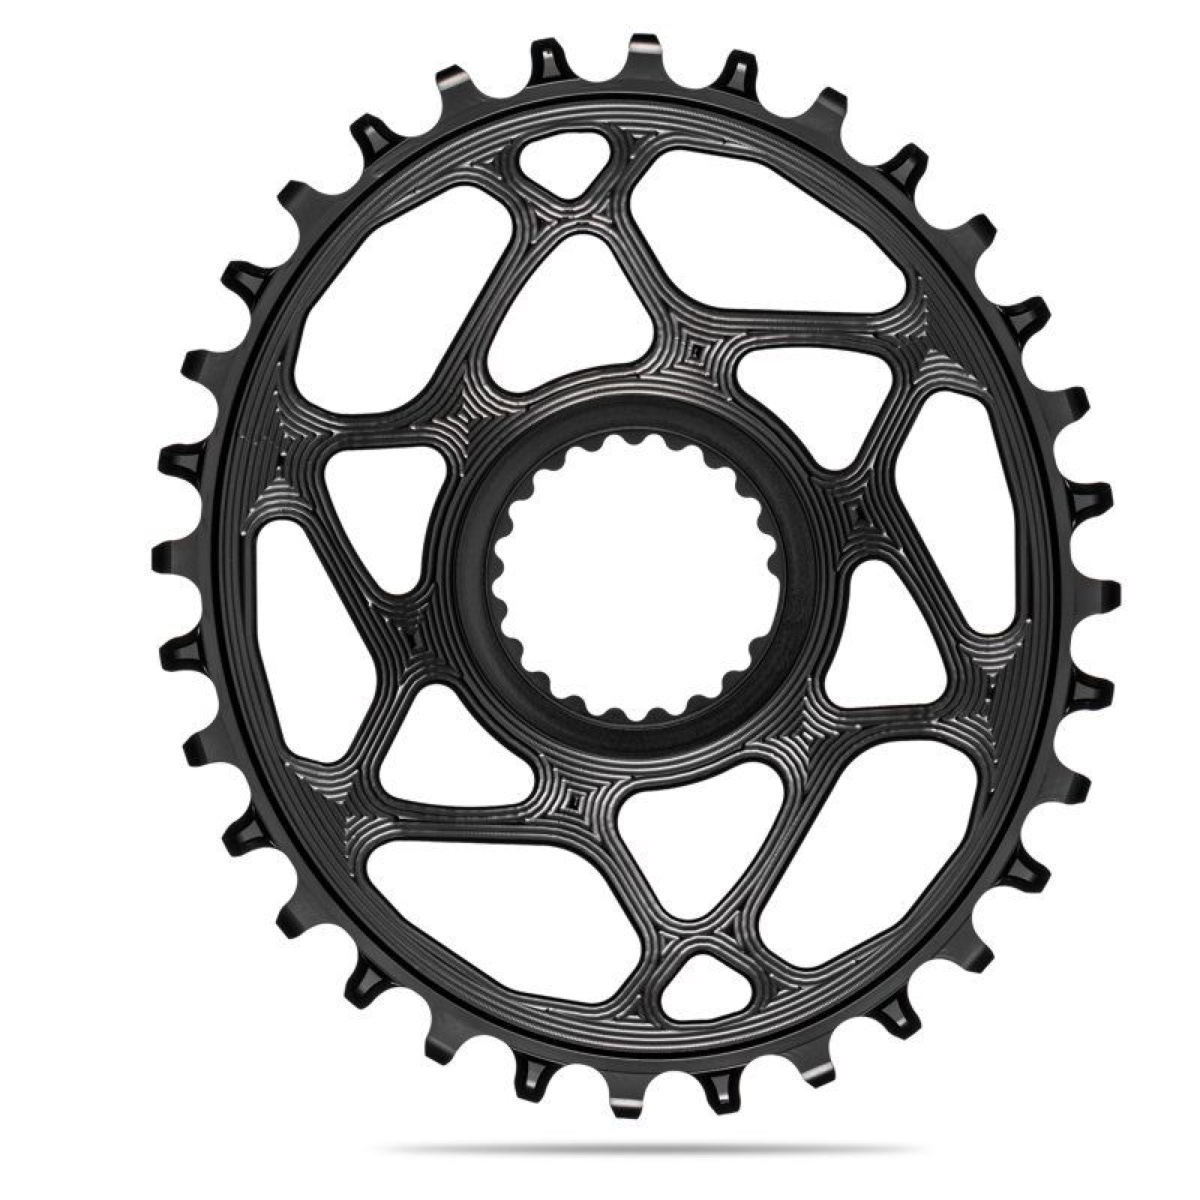 AbsoluteBlack Klinge NW Shimano 12 speed OVAL - Sort - SHDMOVxxBK | chainrings_component